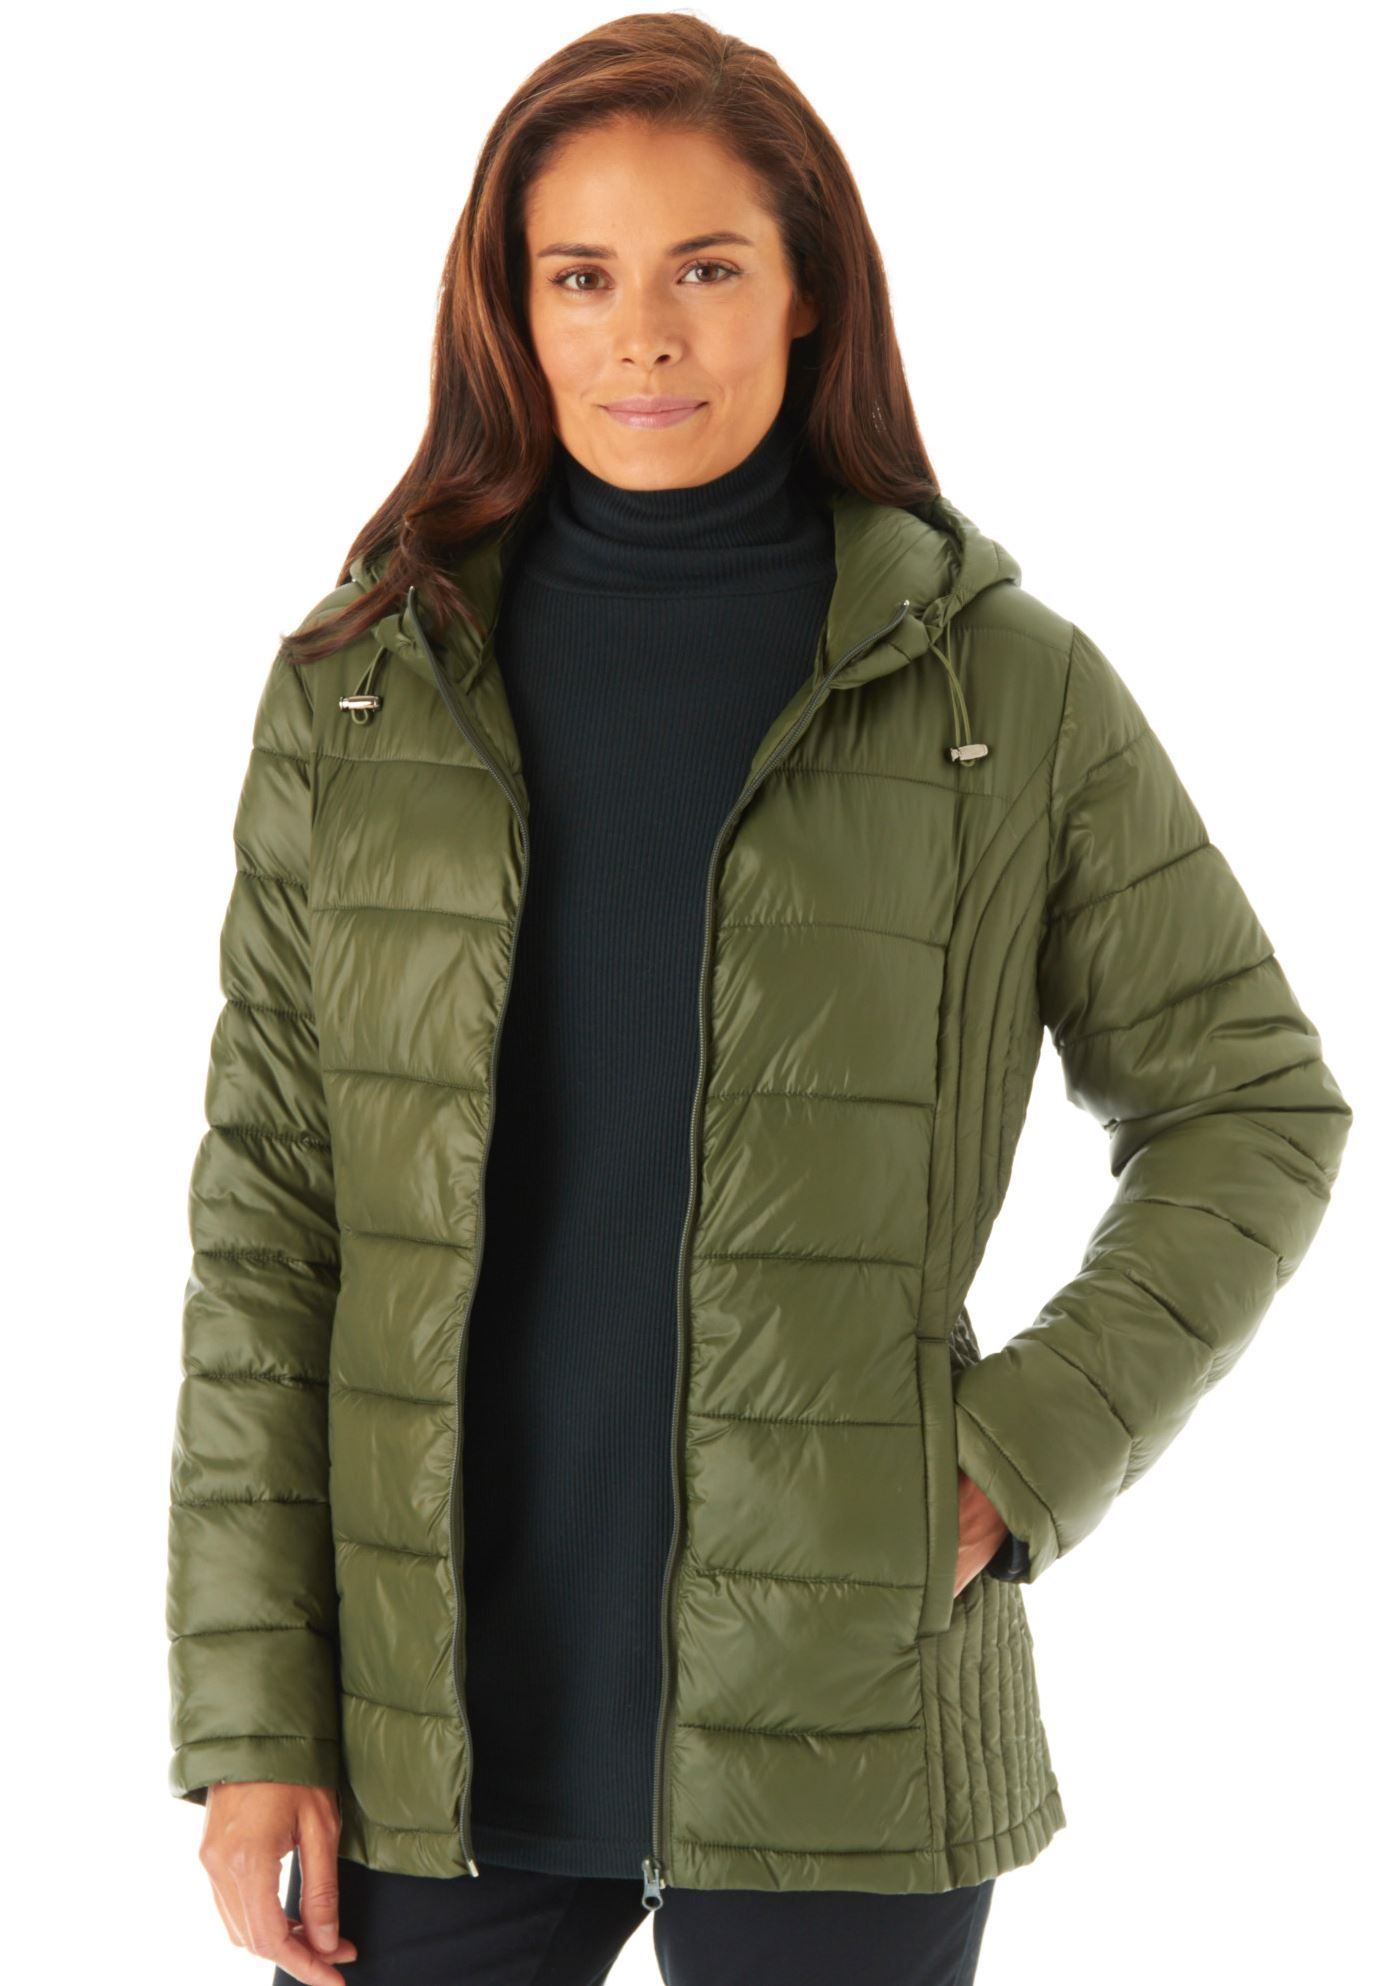 88e9c1c649a Our plus size puffer jacket is your solution to cold weather. Completely  packable into the included drawstring pouch